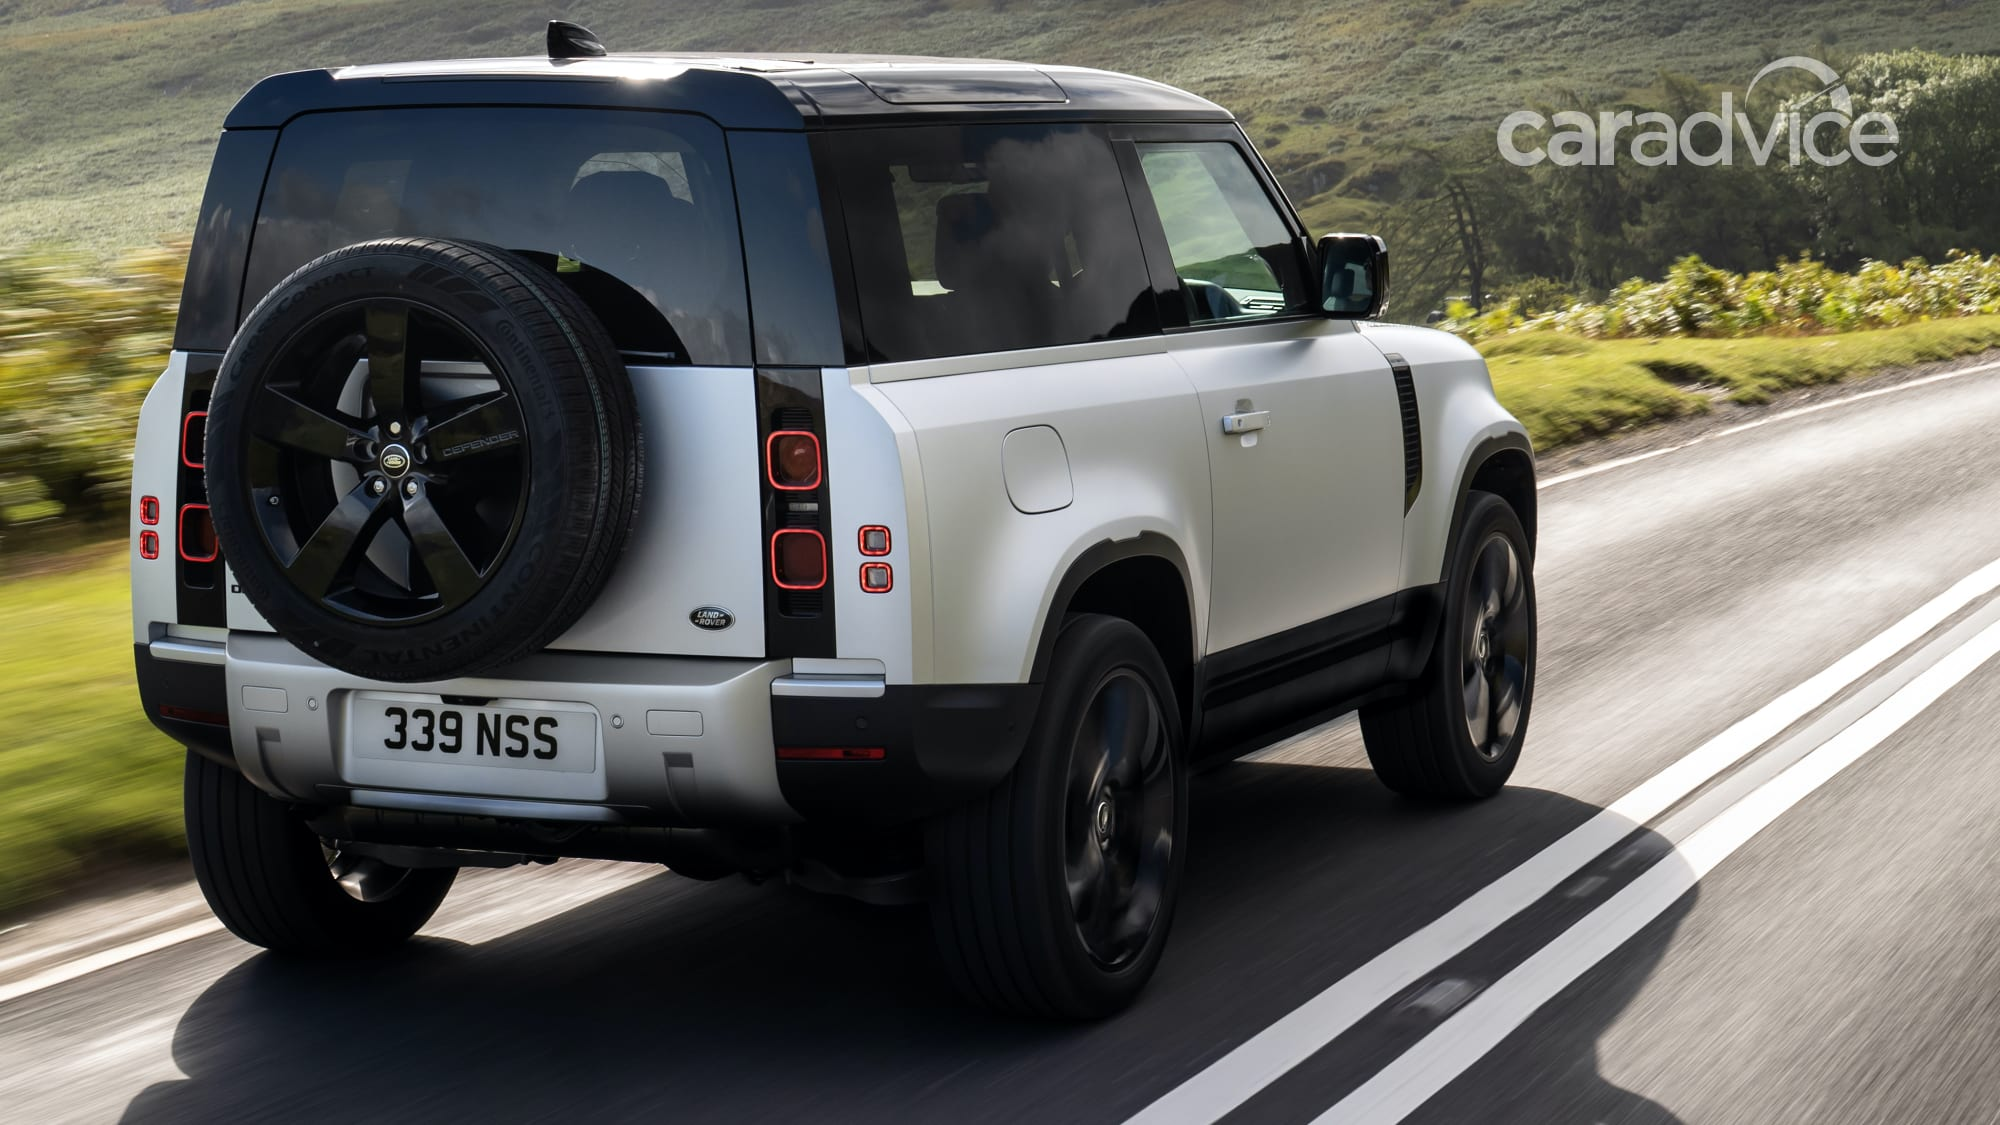 2021 Land Rover Defender 90 and Defender 110 price and ...